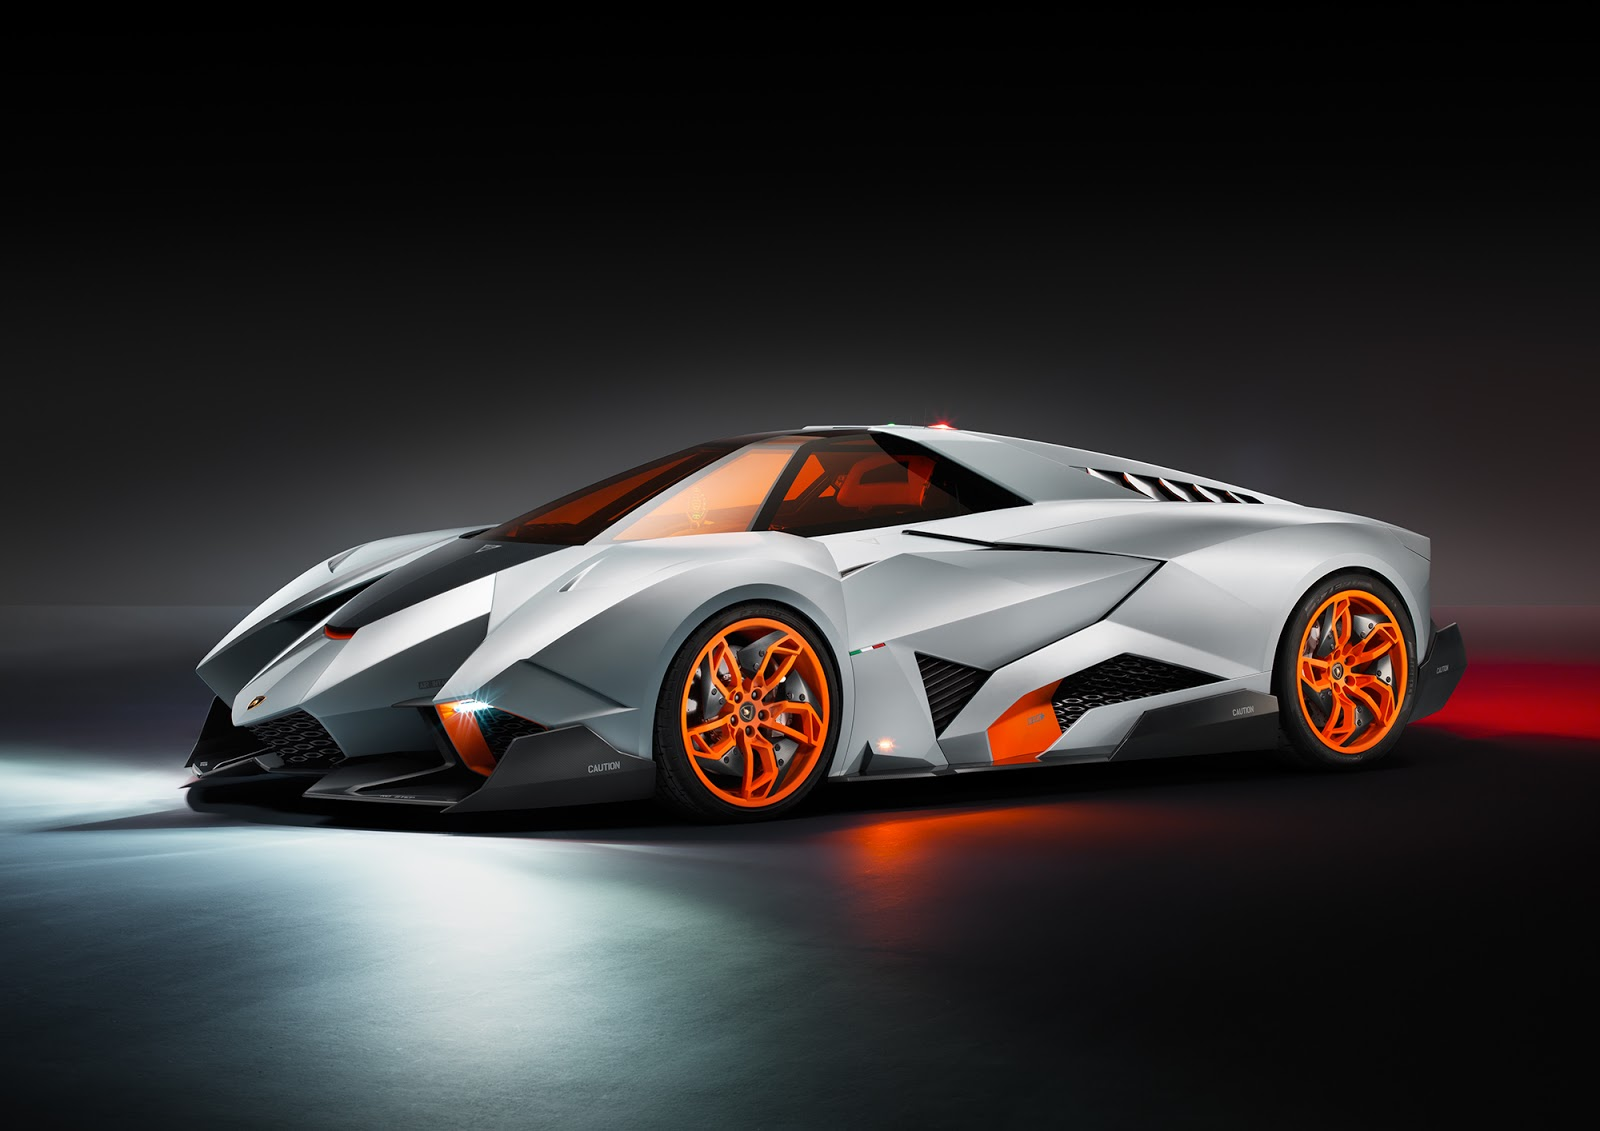 hd wallpaper lamborghini egoista lamborghini egoista hd wallpaper 1600x1131